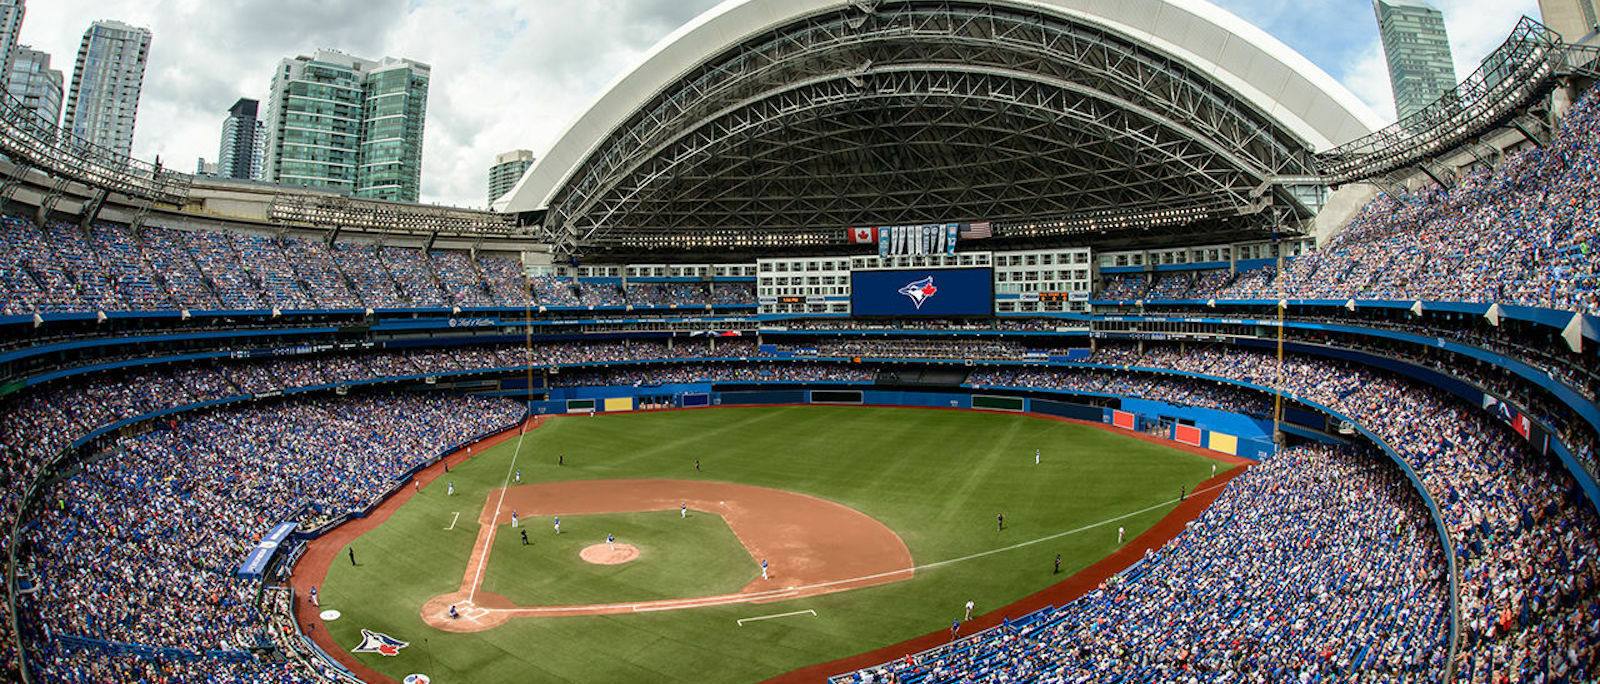 Tampa Bay Rays at Toronto Blue Jays Spring Training Tickets (Split Squad)